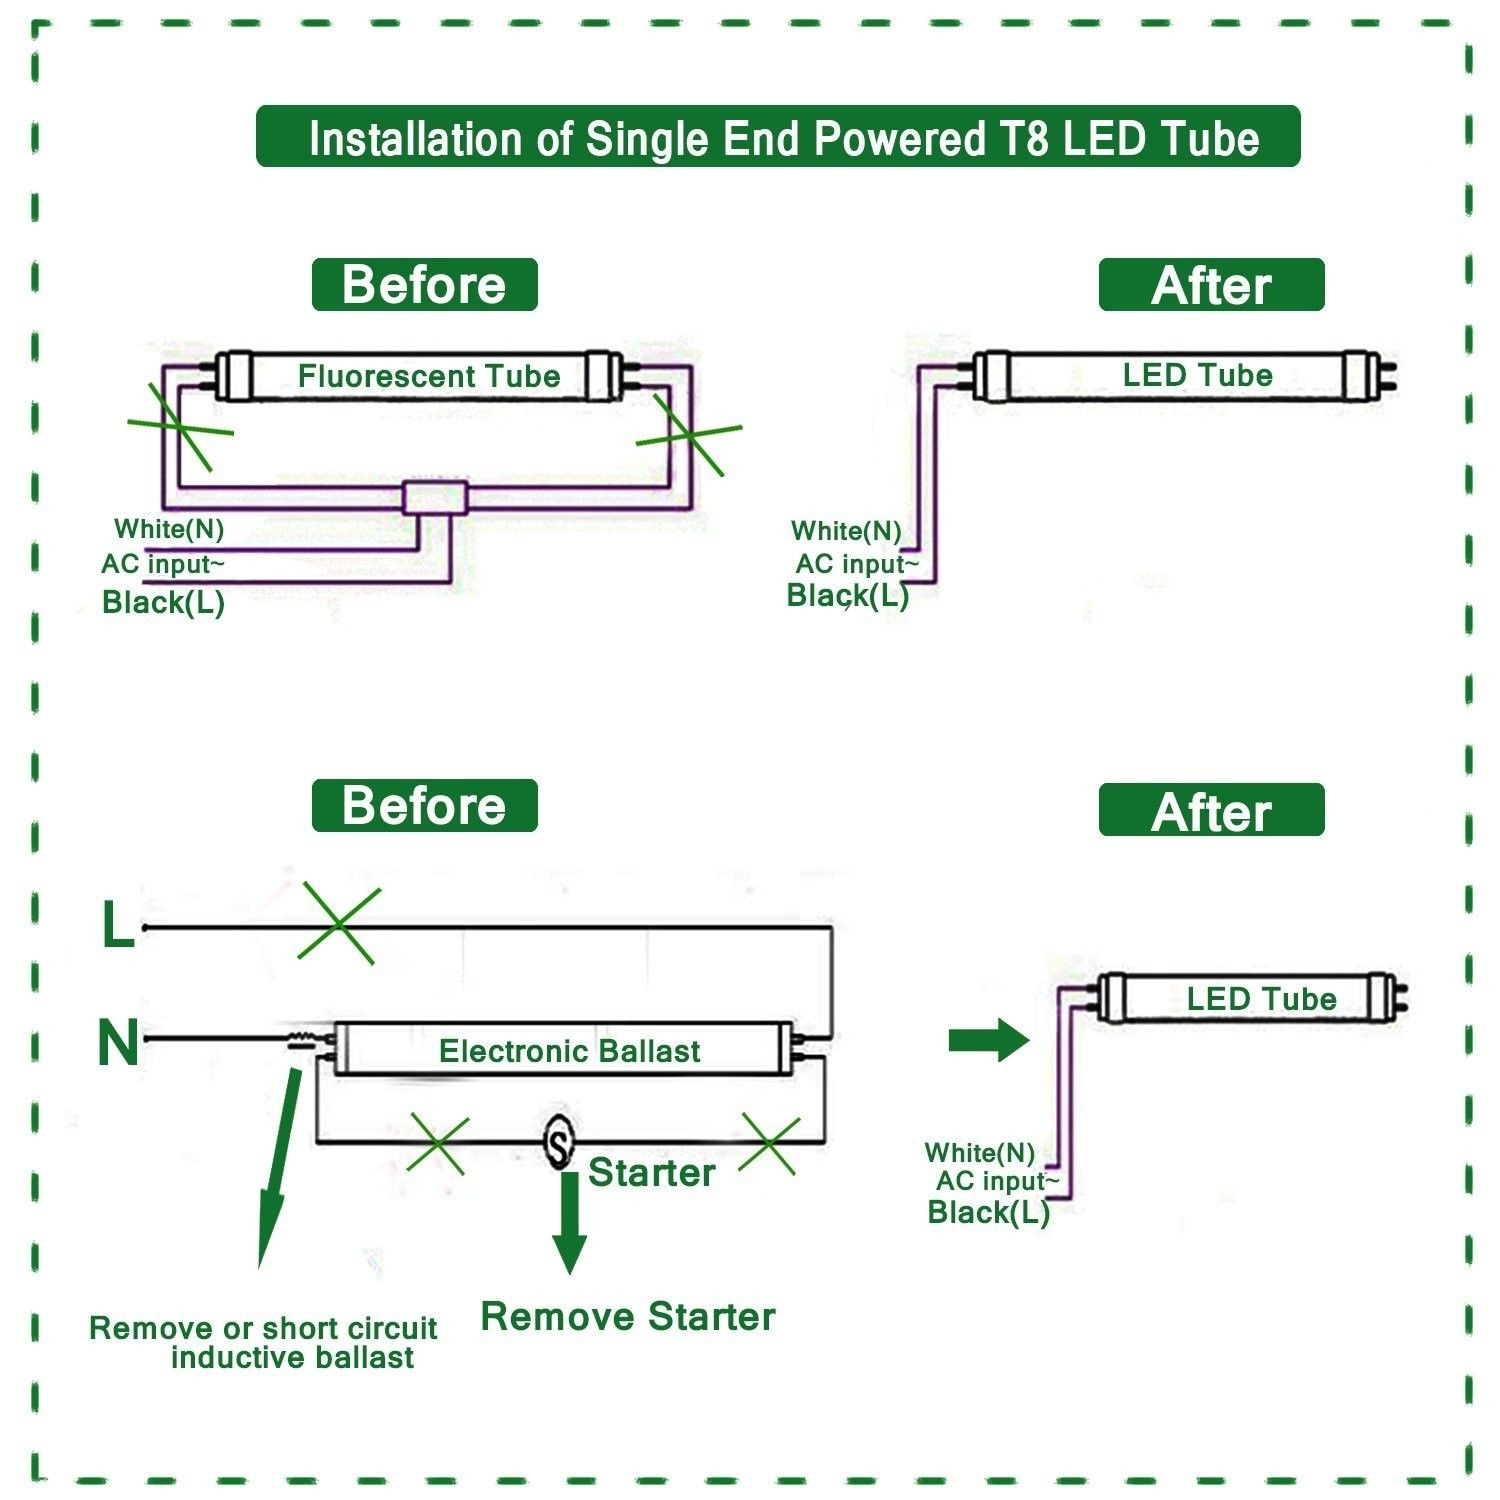 Lovely Wiring Diagram Fluorescent Light Switch Diagrams Digramssample Diagramimages Wiringdiagramsample Wi Led Tubes Led Fluorescent Tube Fluorescent Tube